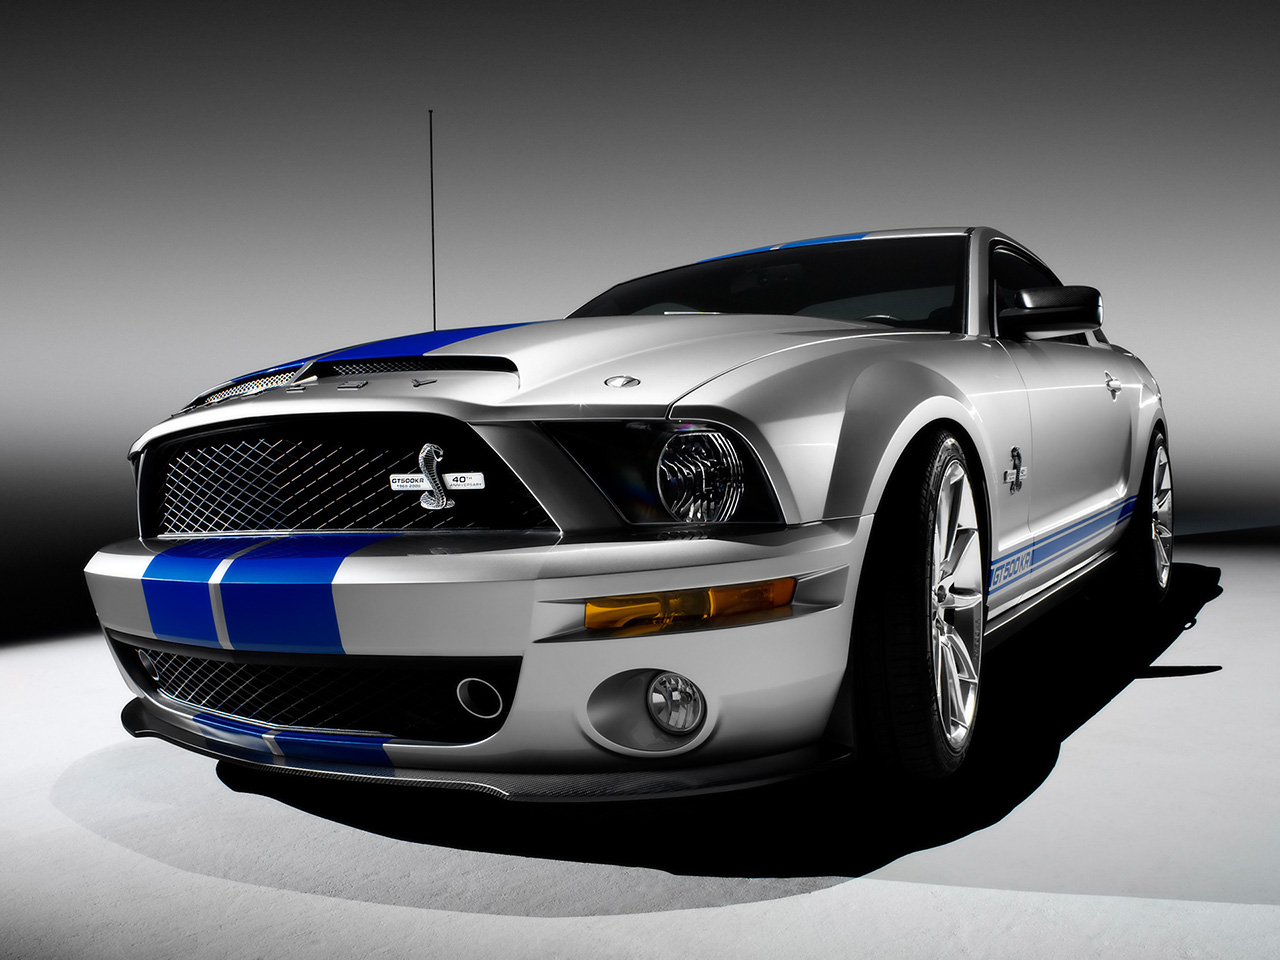 Ford mustang shelby gt500 pictures beautiful cool cars - Mustang shelby ...